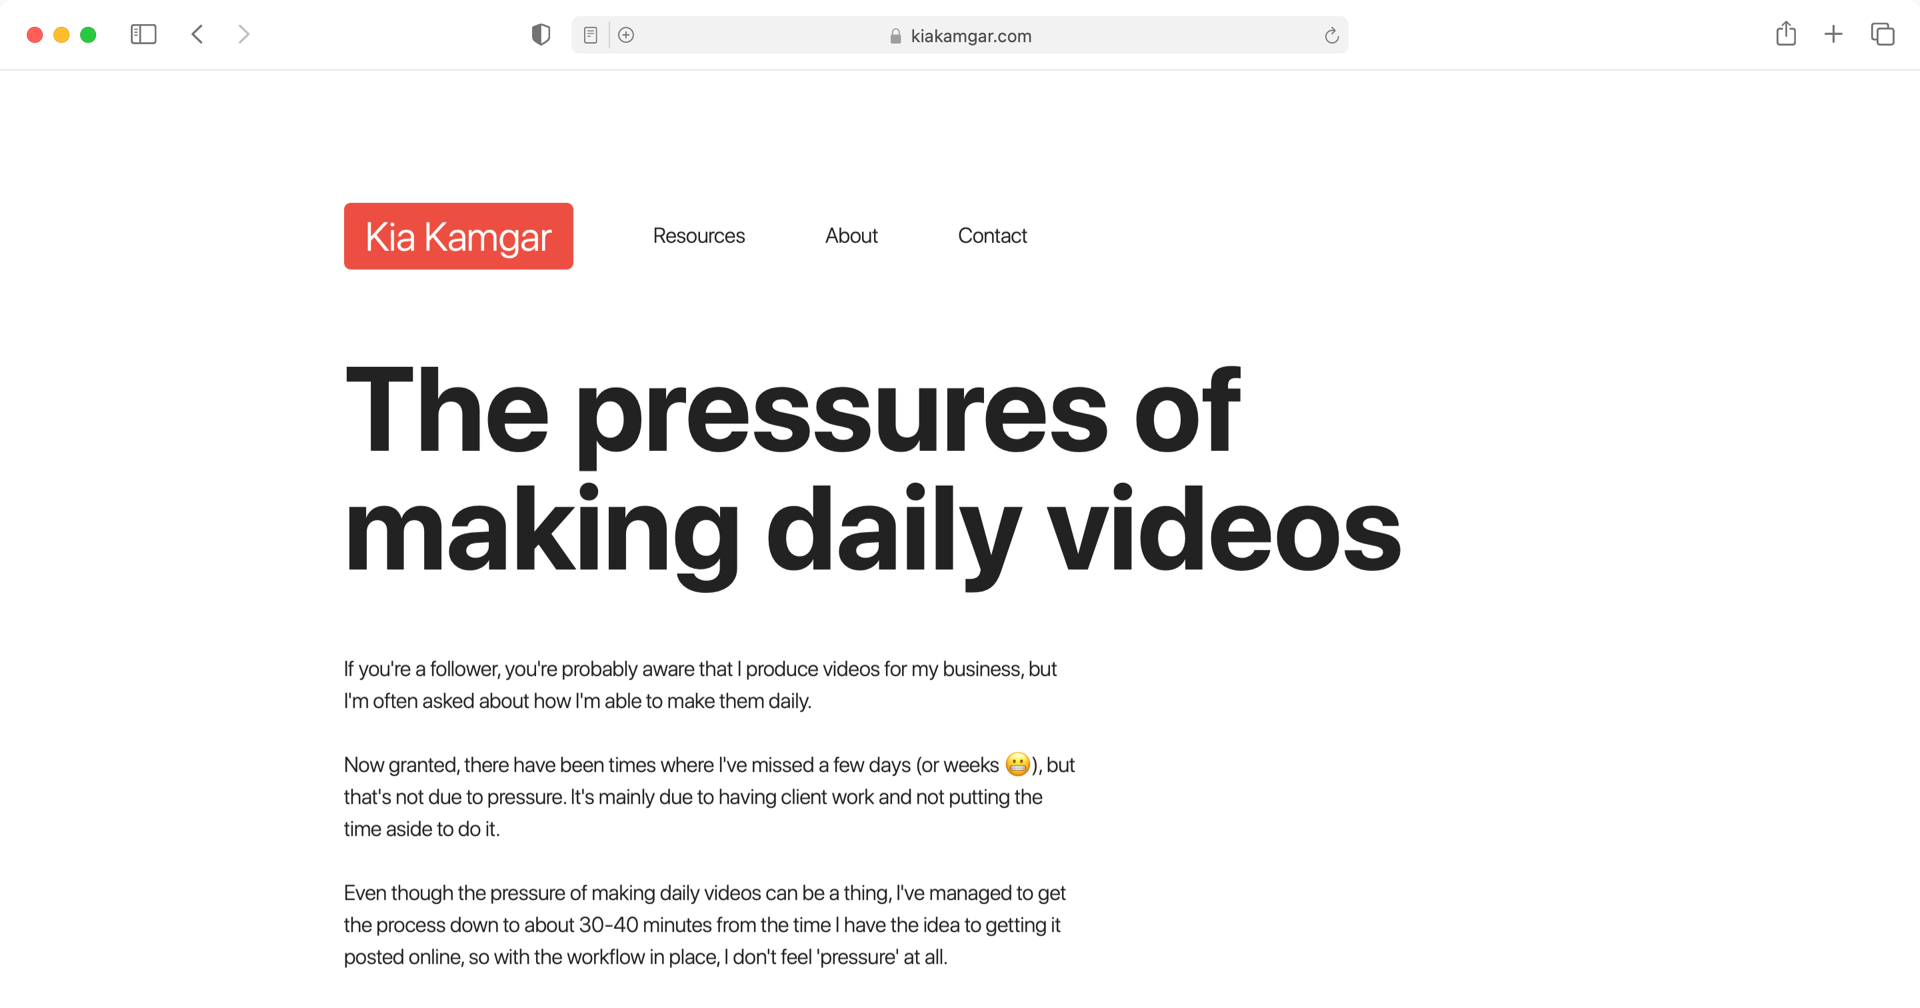 The pressures of making daily videos